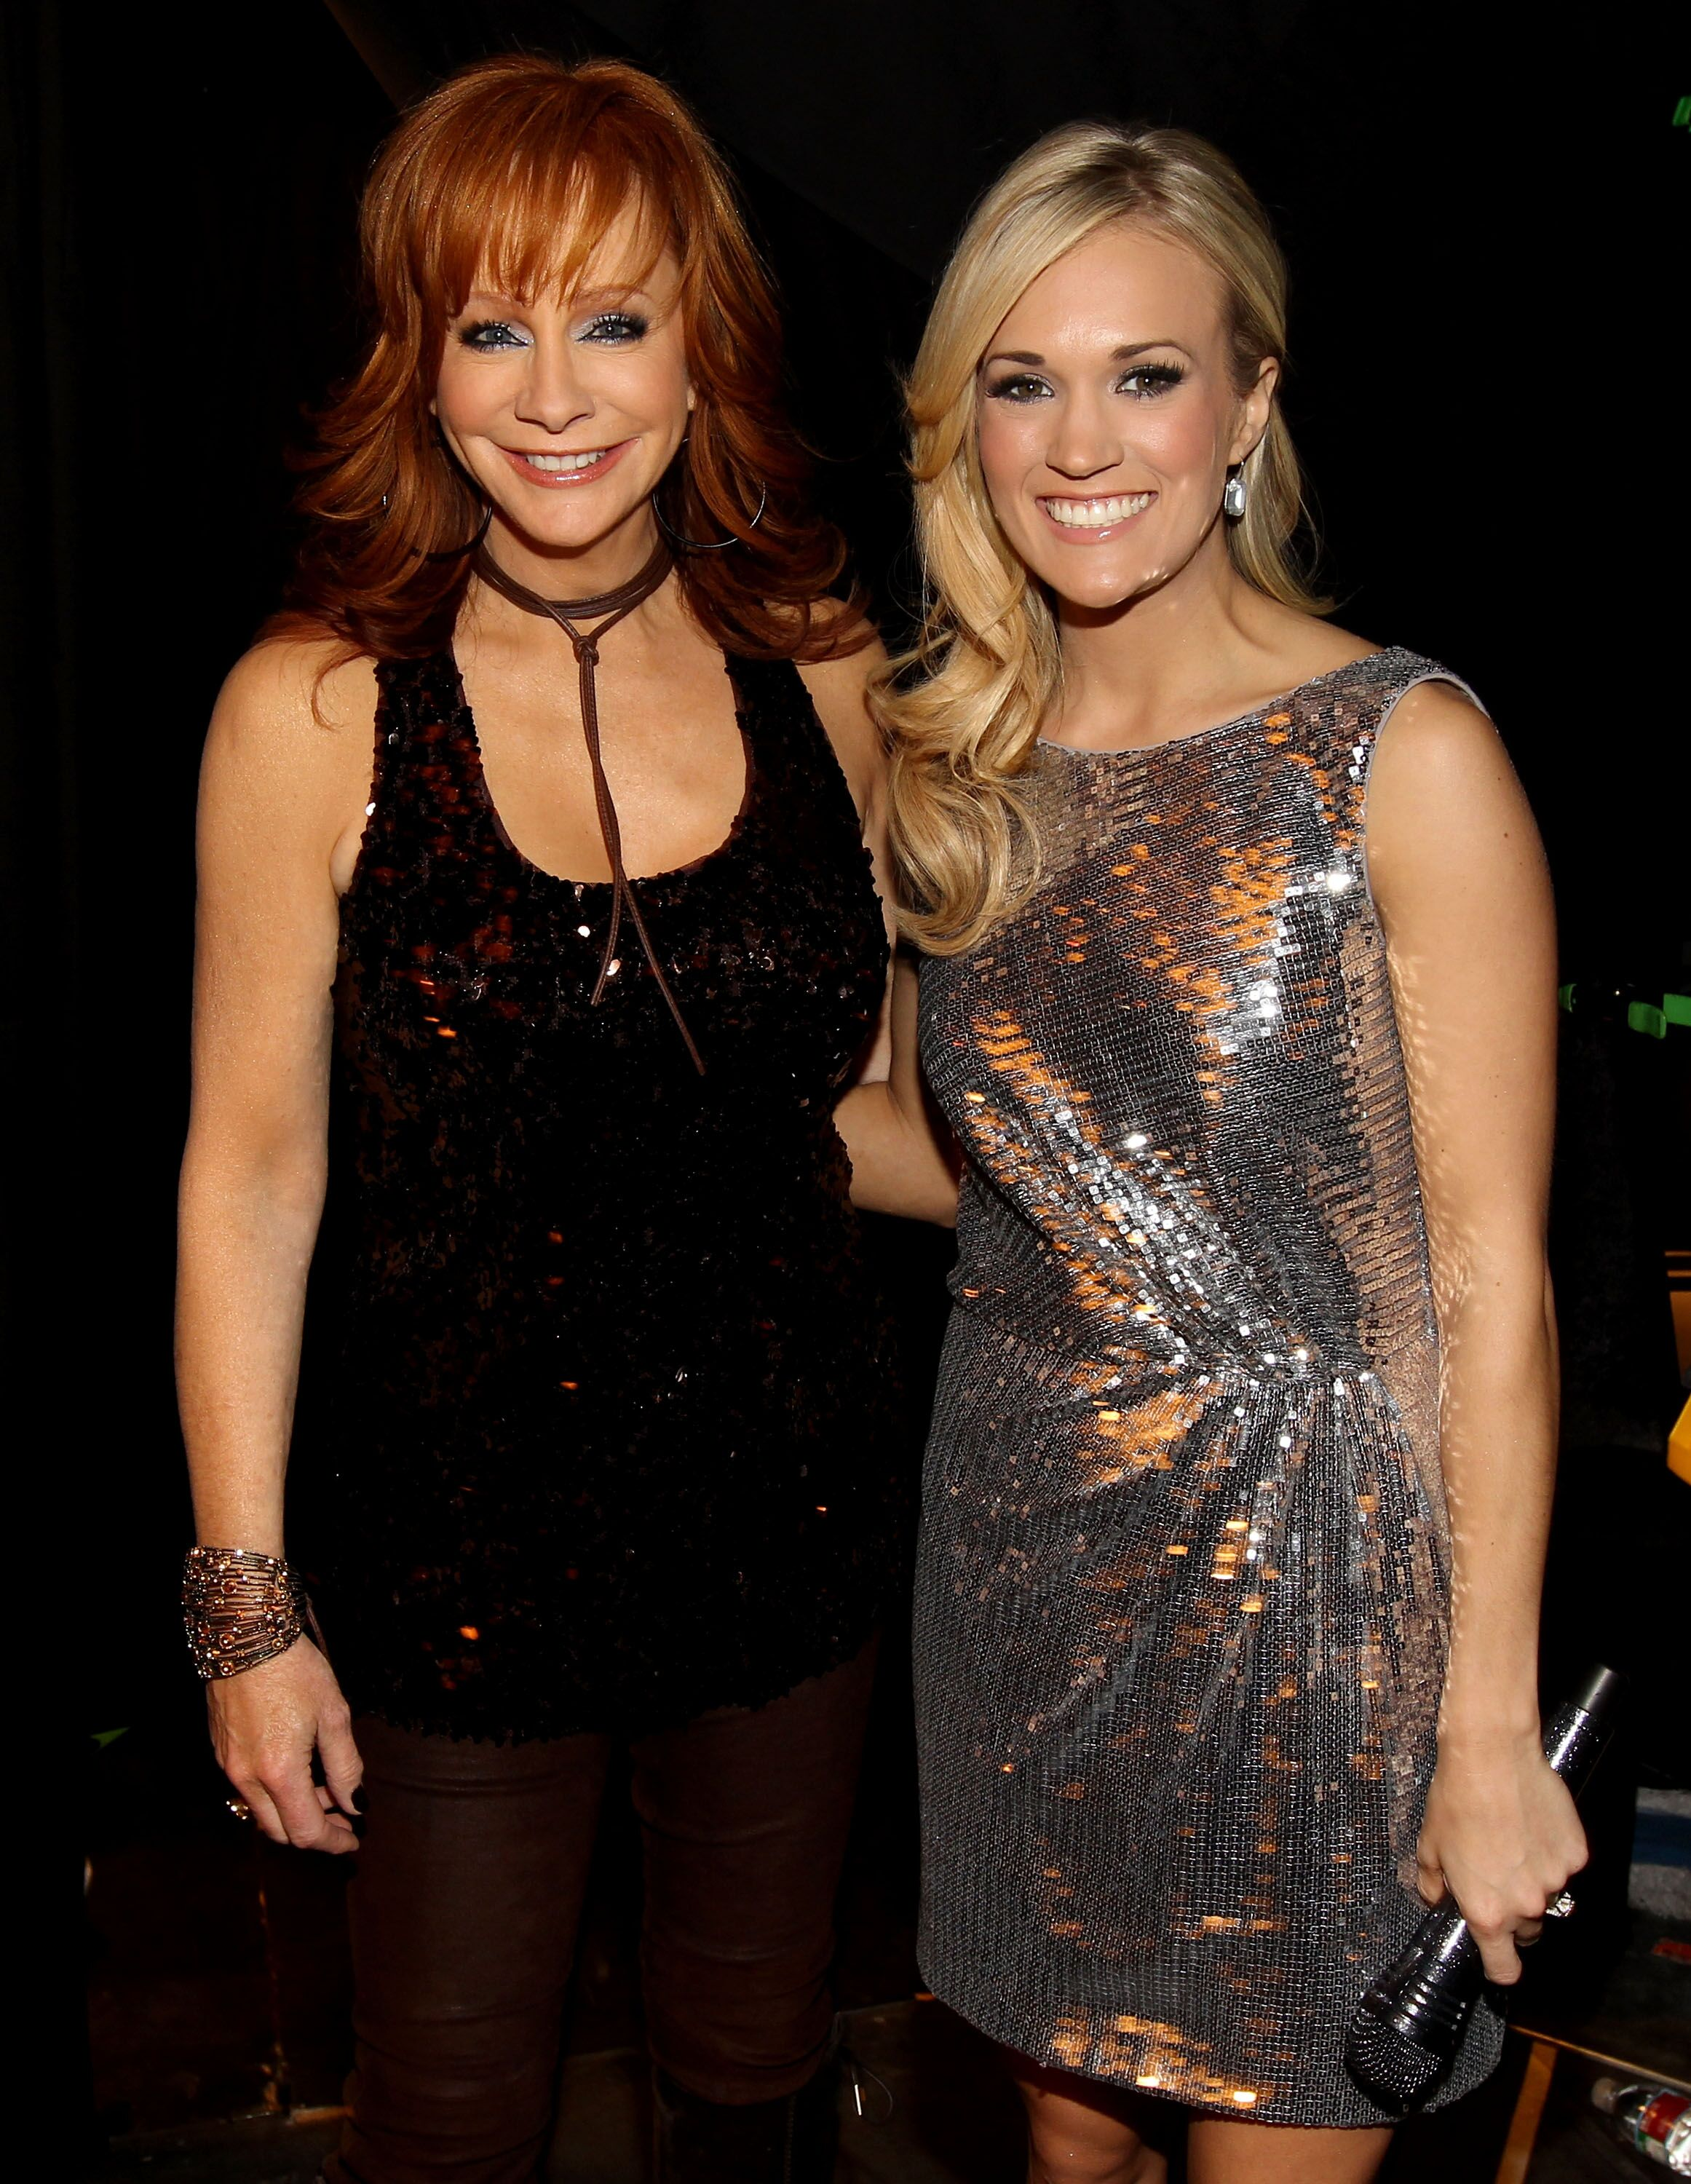 """Carrie Underwood and Reba McEntire  backstage during """"The Last Rodeo Show"""" in Las Vegas in 2010 